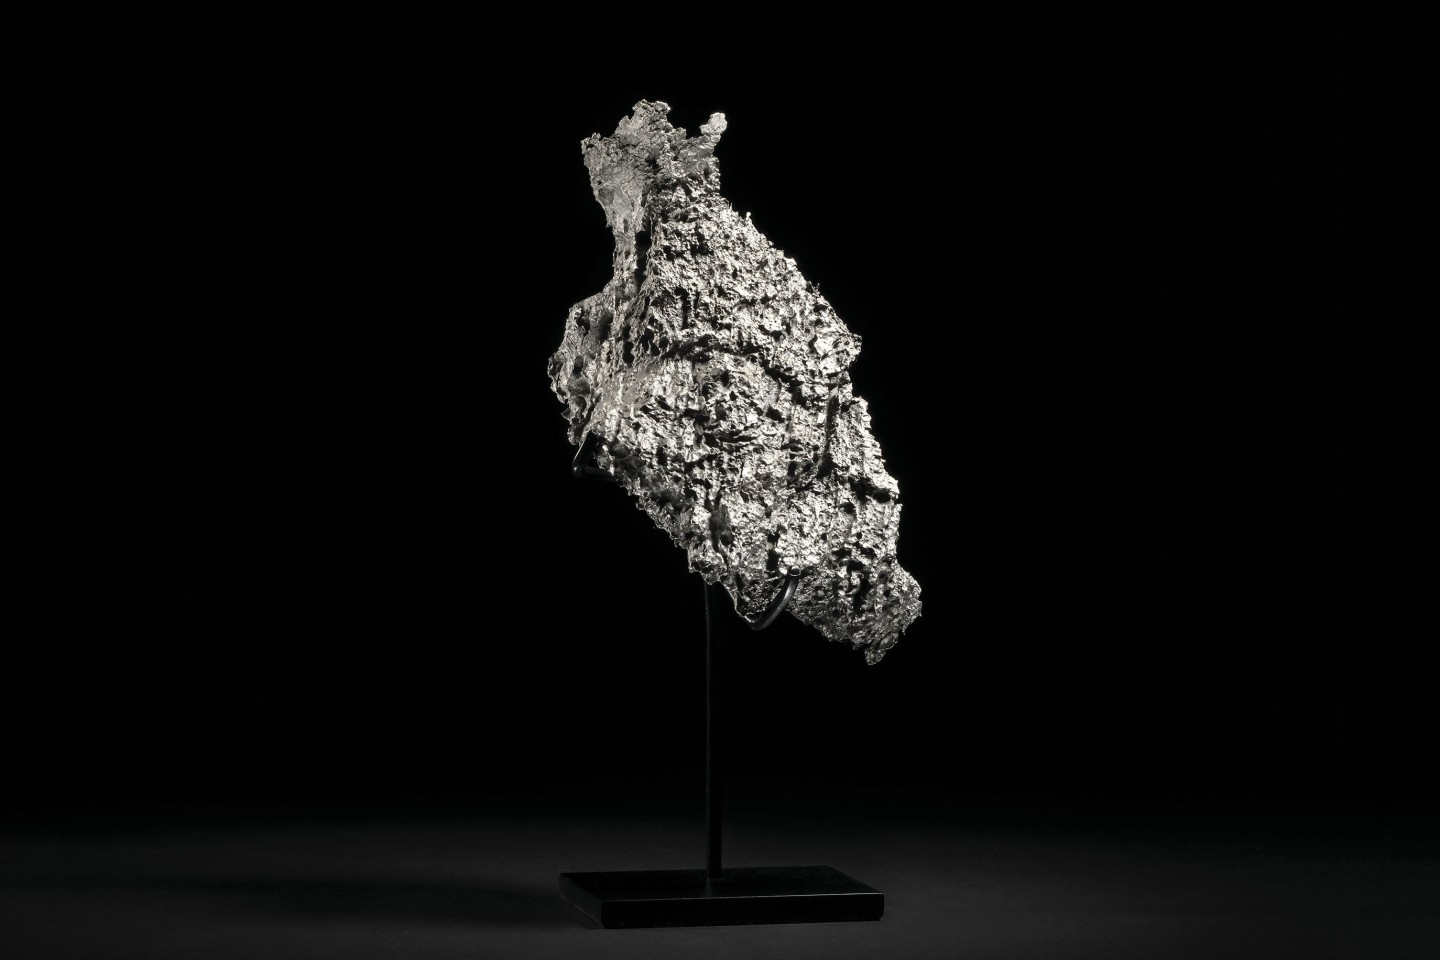 Named after the small Russian town situated close to its discovery site, Dronino meteorites are iron-rich meteorites boasting an exotic chemical composition. This specimen measures 91⁄4 x 43⁄4 x 41⁄2 inches (24 x 12.5 x 12 cm) and weighs 5.4 kg